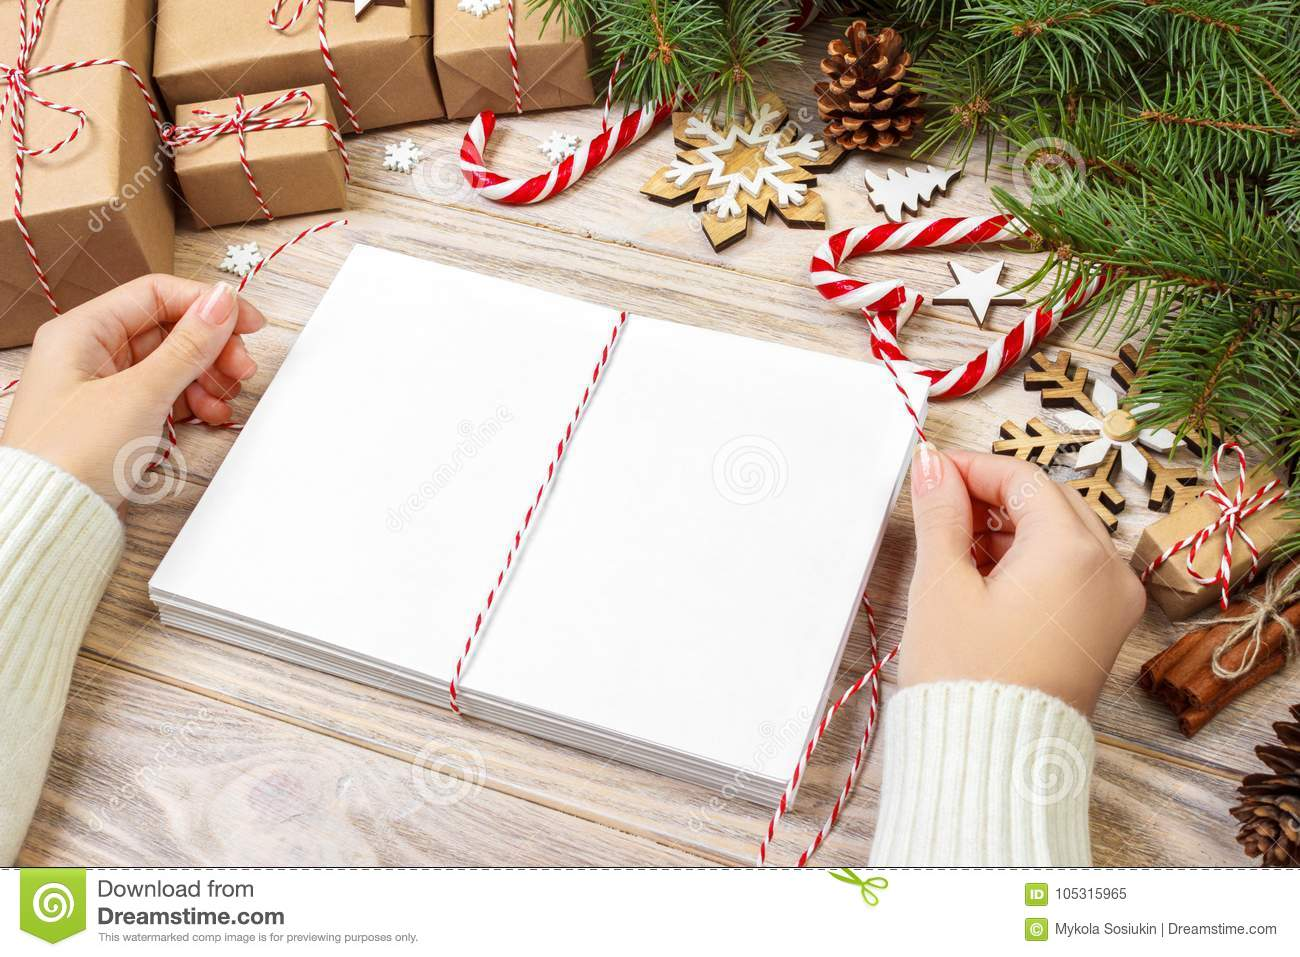 Download Letters Wrapping And Gift Box, Cards For Christmas Greetings.  Envelopes With Letters,